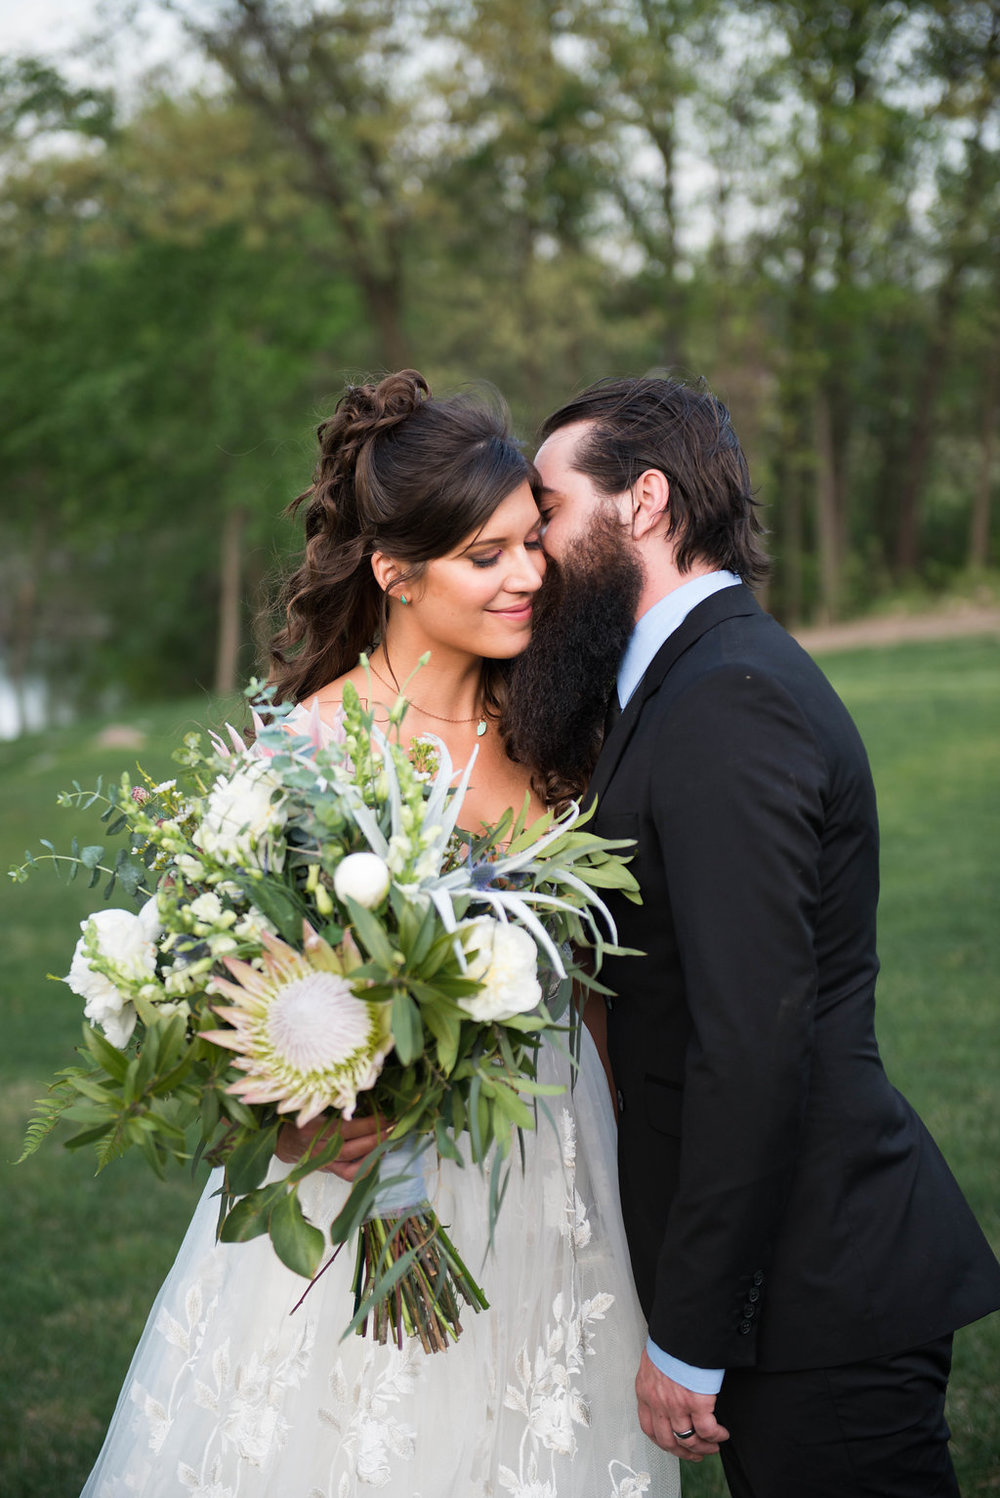 Boho Springtime Romantic Wedding Inspiration